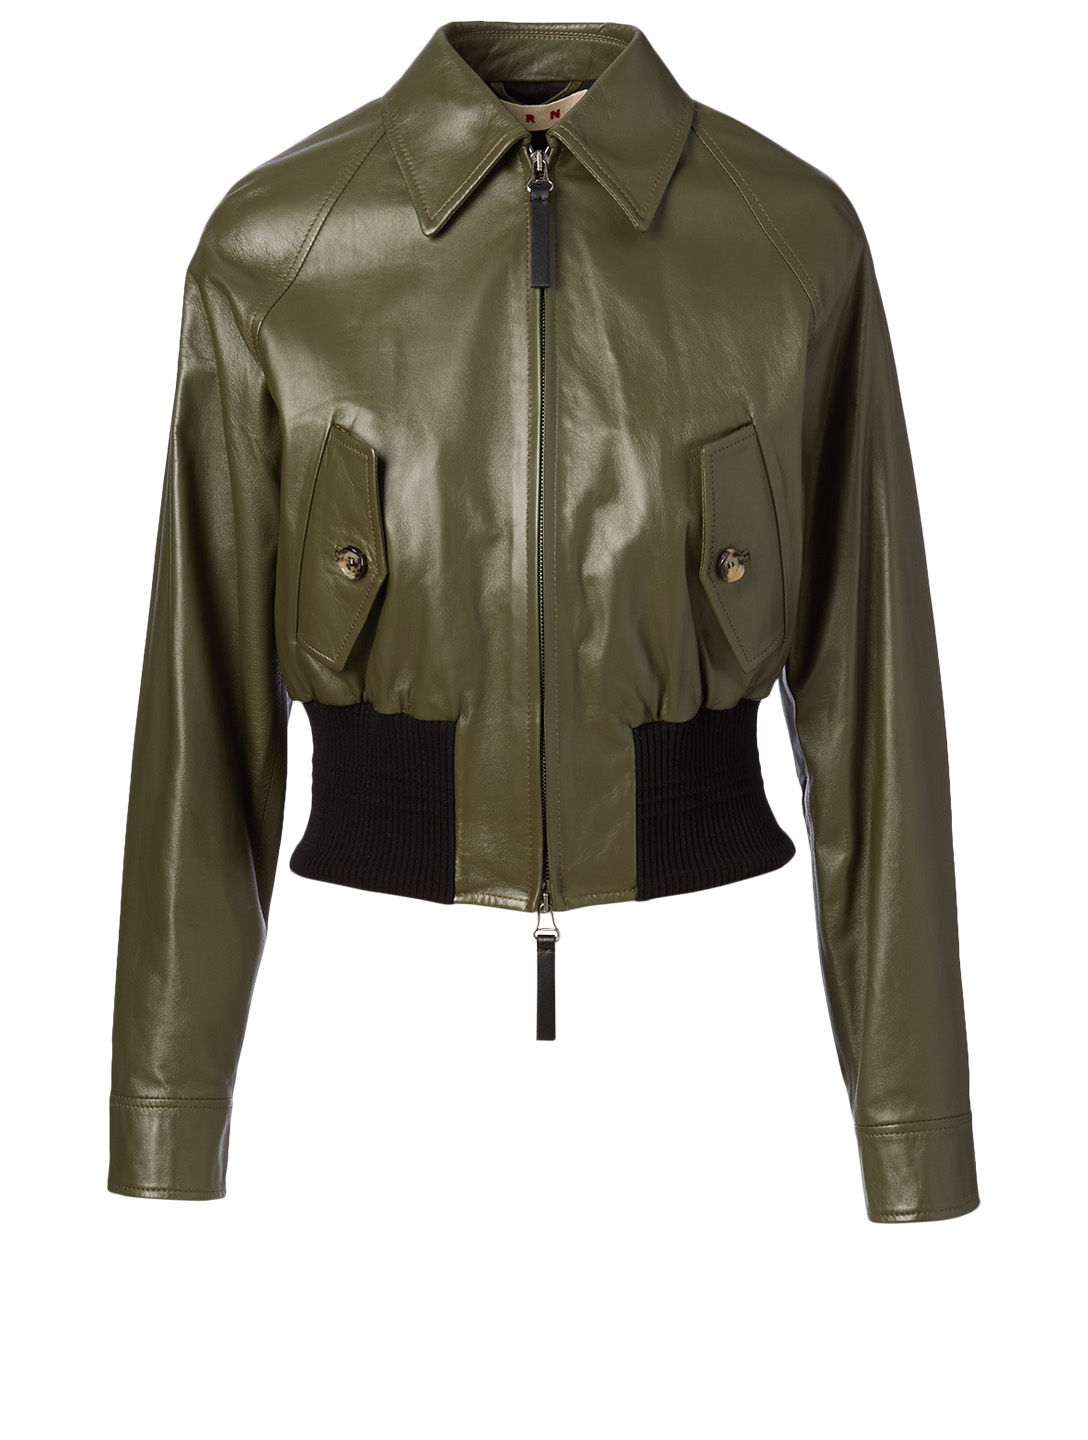 MARNI Leather Bomber Jacket Women's Green